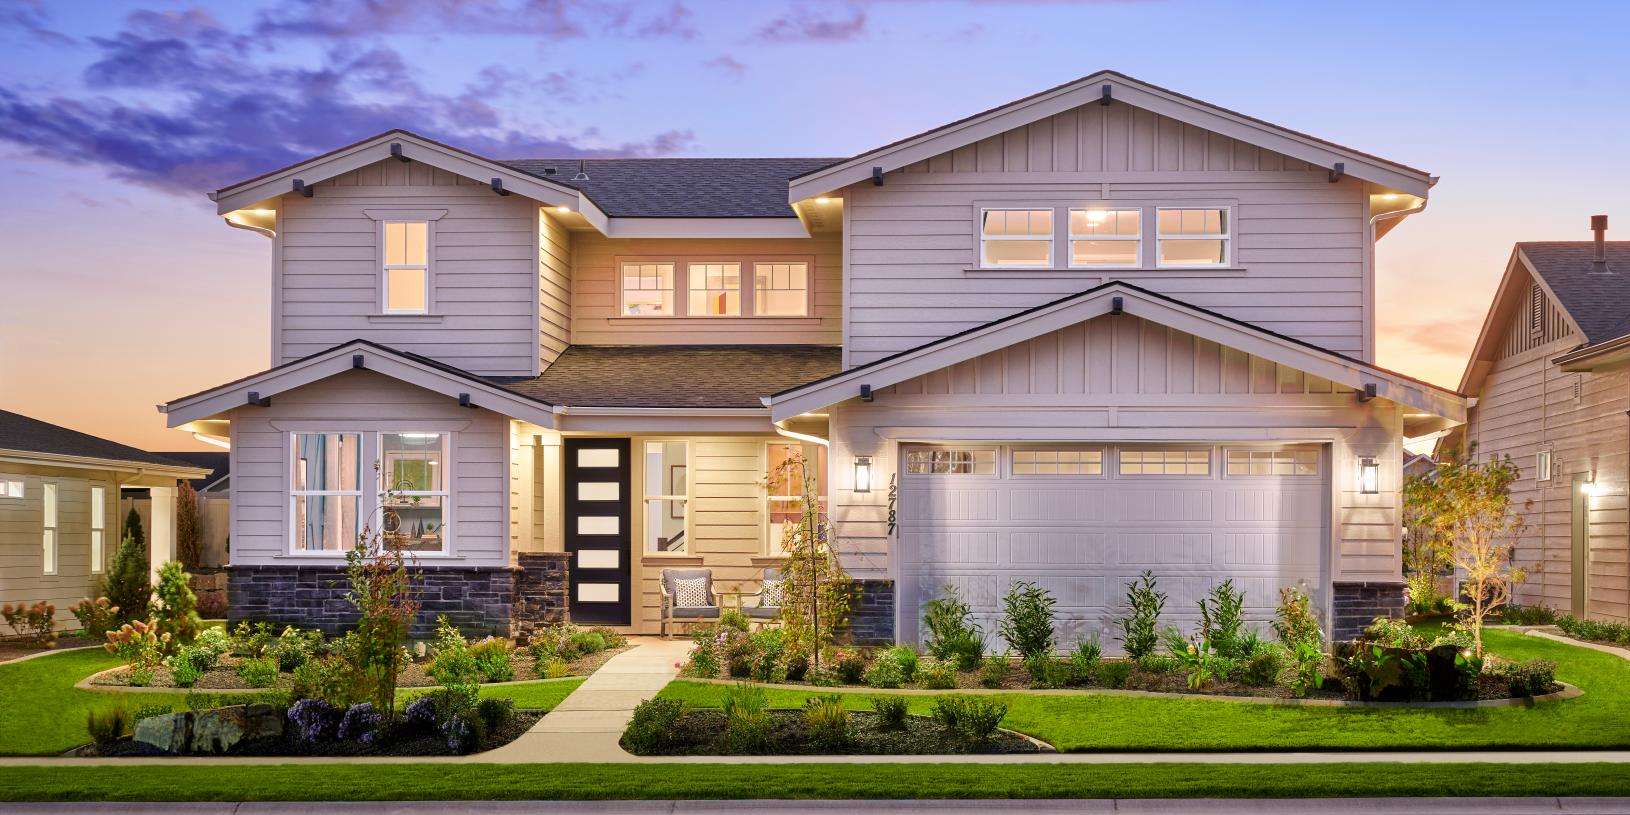 Enjoy exceptional curb appeal